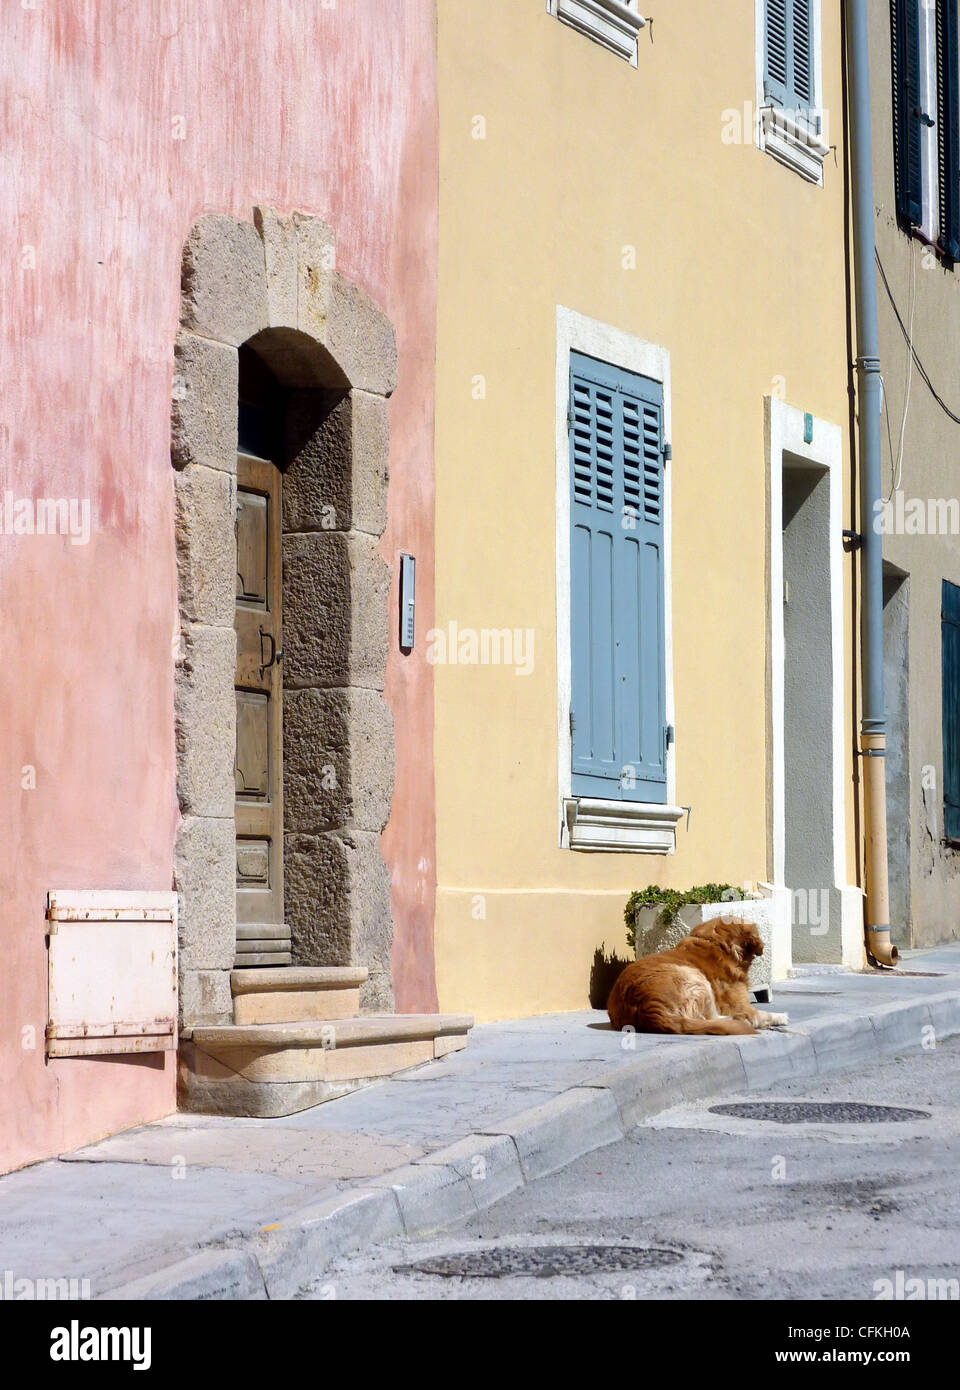 Clear brown dog lying on the pavement in a street with colored facades of house - Stock Image